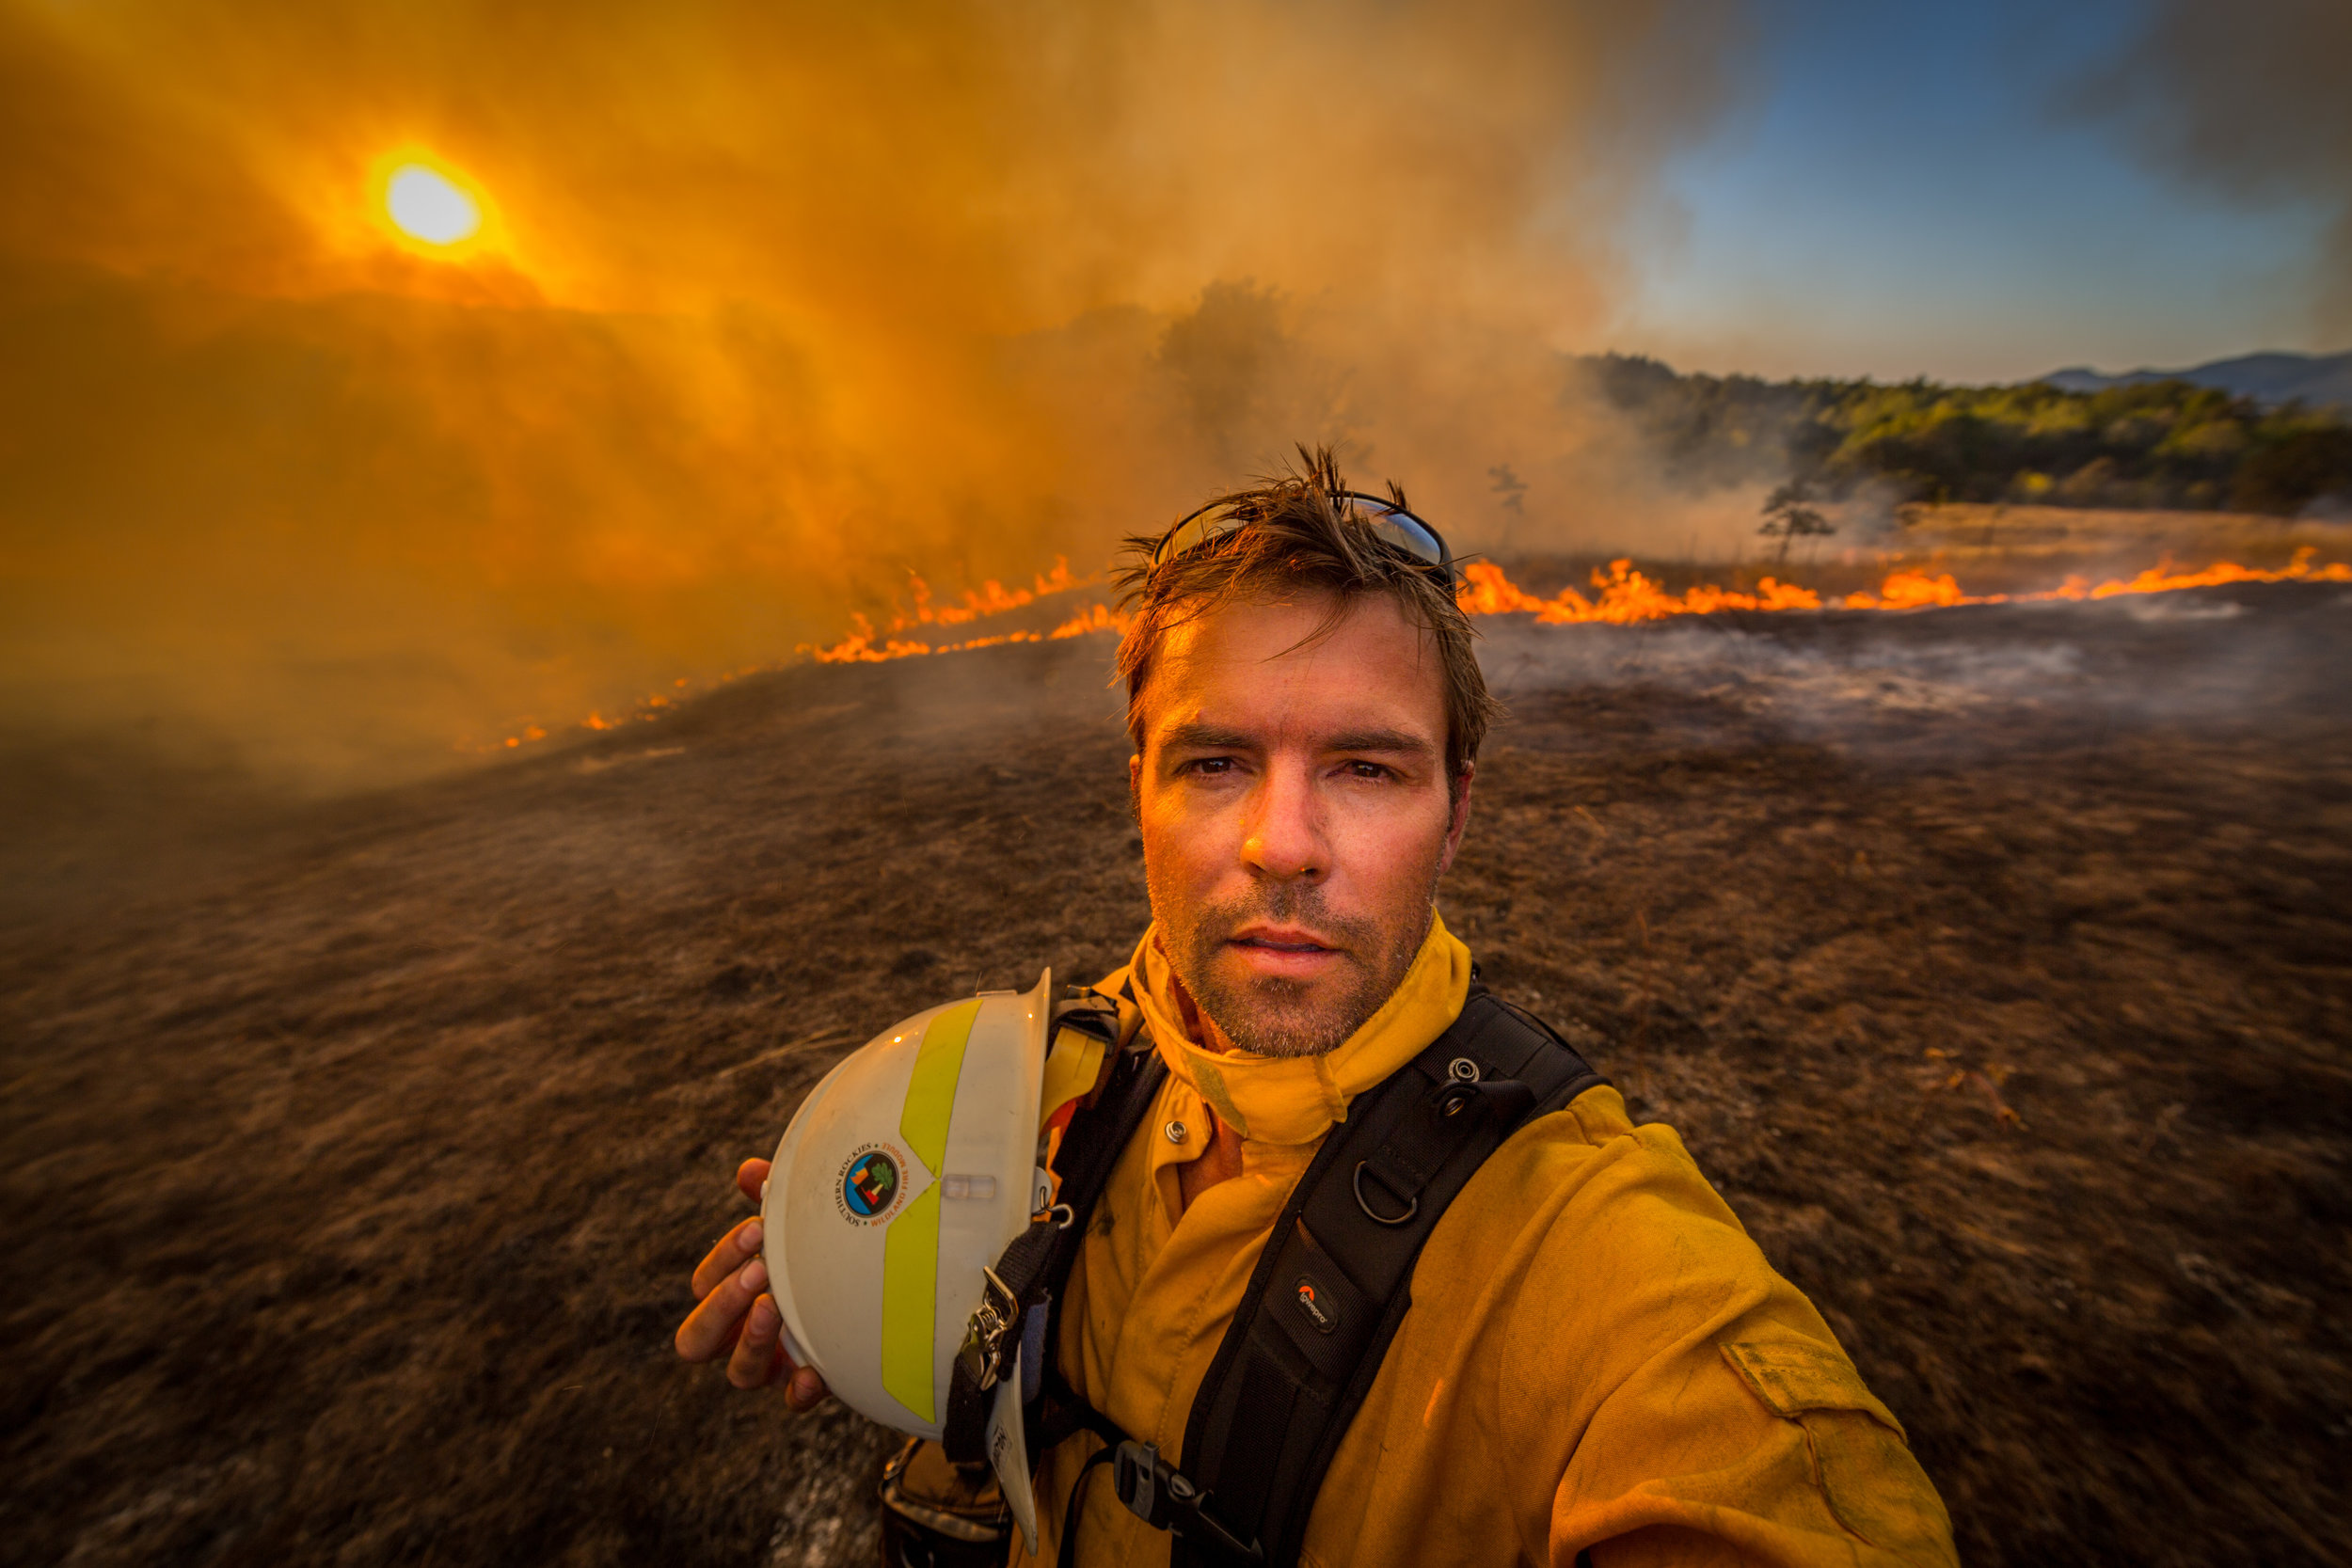 For a cover story on wildfire ecology for The Nature Conservancy I trained for and received my Wildland Firefighter Red Card and embedded with a fire crew.